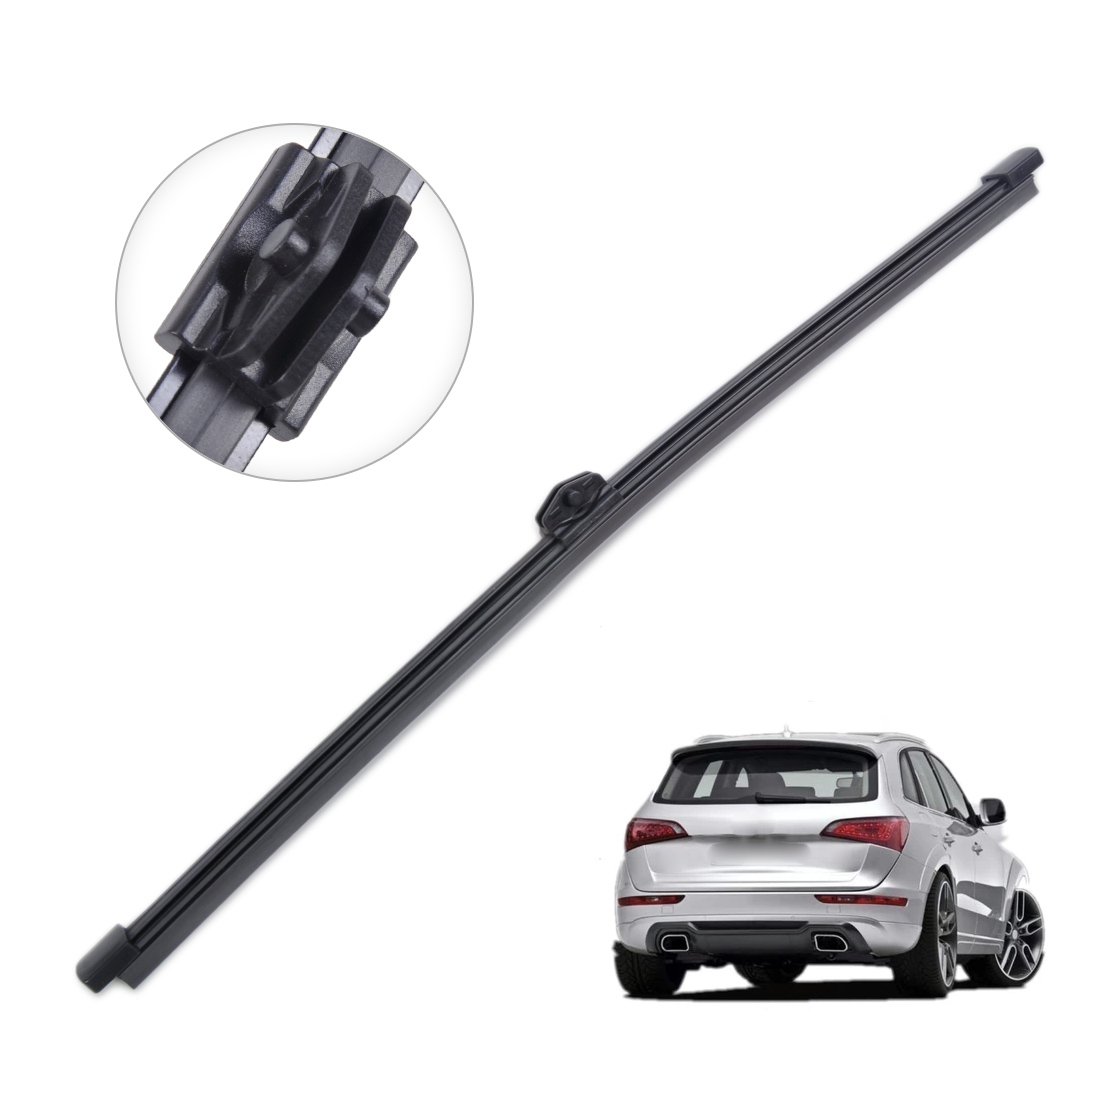 DWCX Rear Window Windshield Windscreen Wiper Blade For Audi Q5 3.2 2009 2010 2011 2012